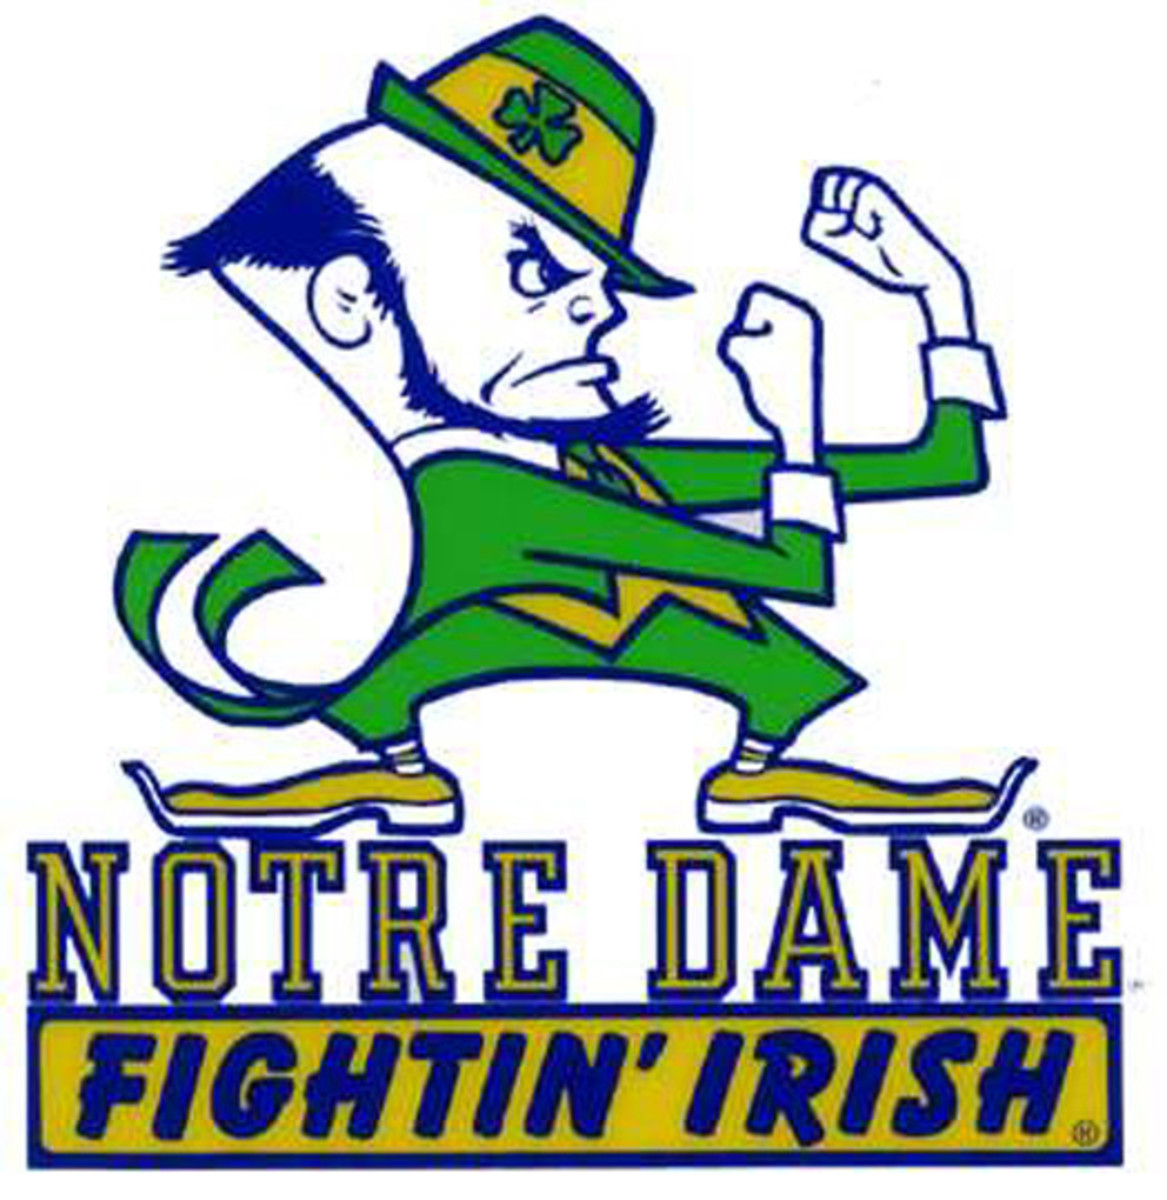 Notre Dame would deliver the eastern TV markets without adding schools that don't fit.